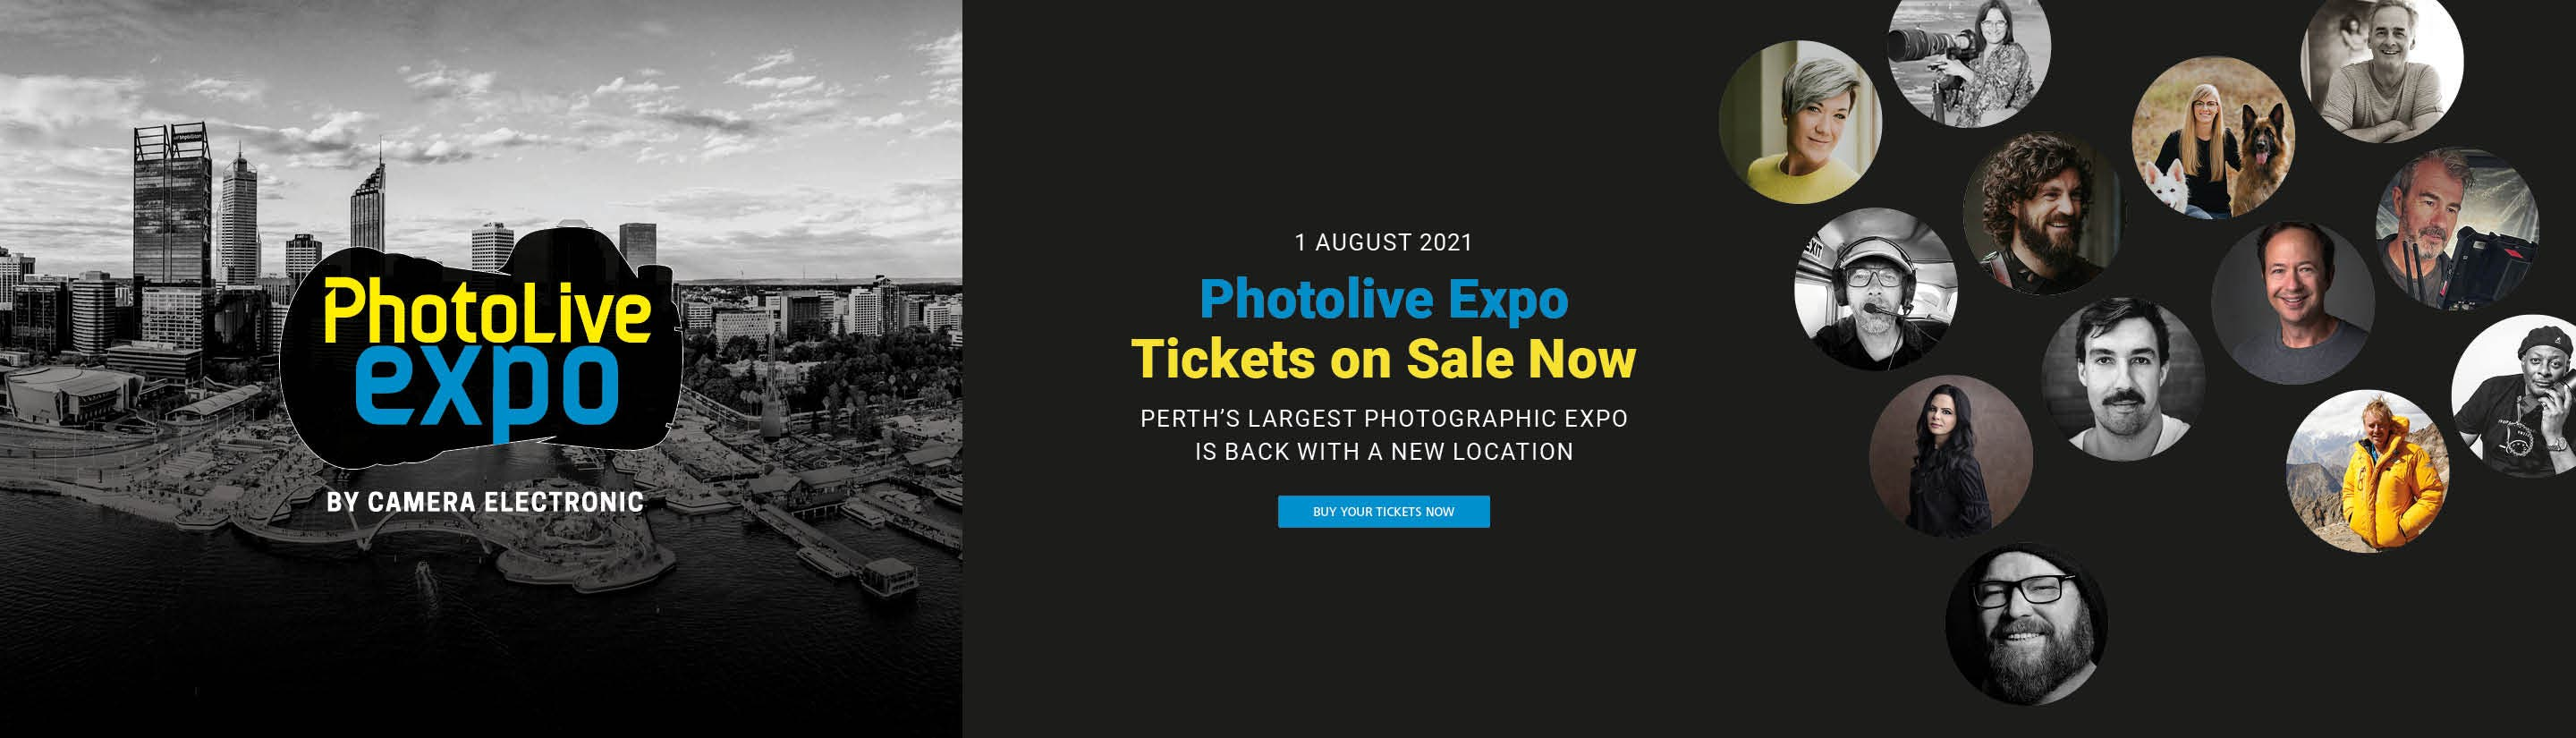 PhotoLive Expo 2021 Ticket Sales